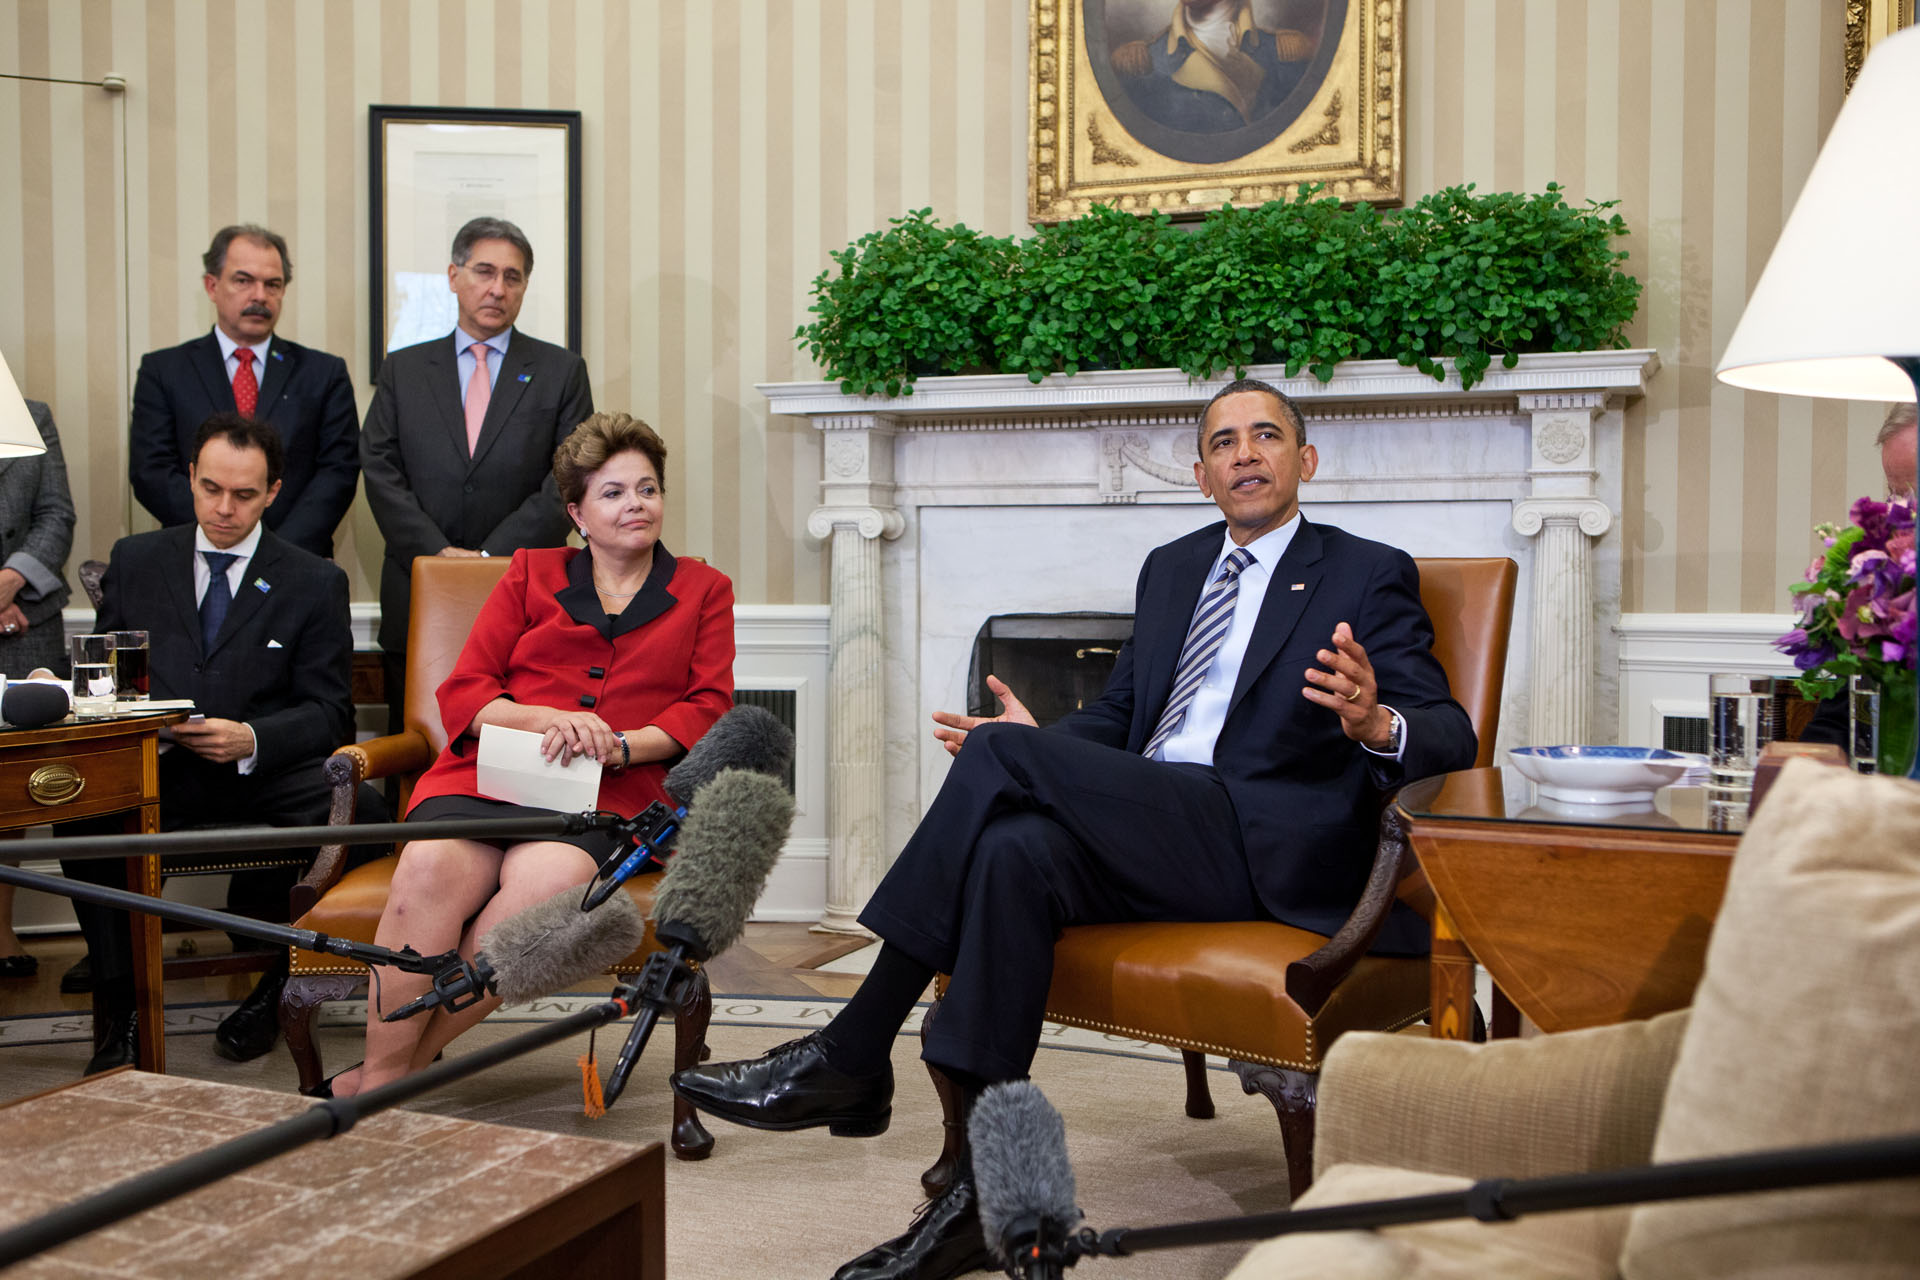 President Obama and President Rousseff Deliver a Statement